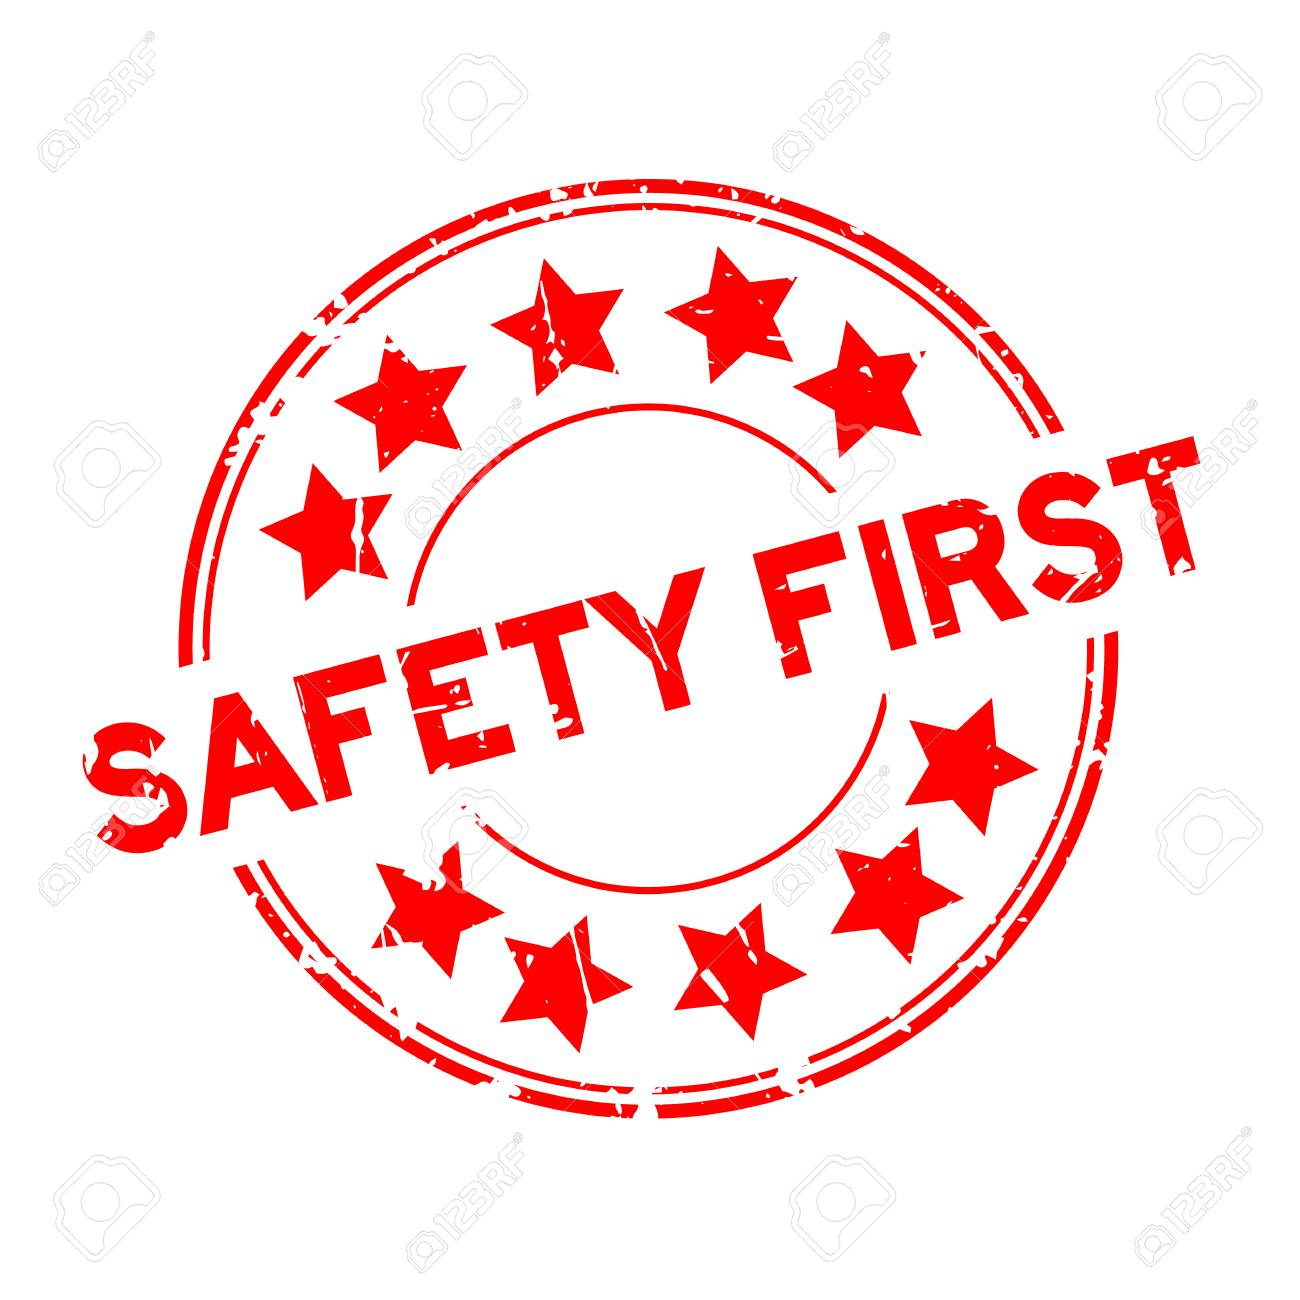 Grunge Red Safety First Wording With Star Icon Round Rubber Seal Royalty Free Cliparts Vectors And Stock Illustration Image 100147349